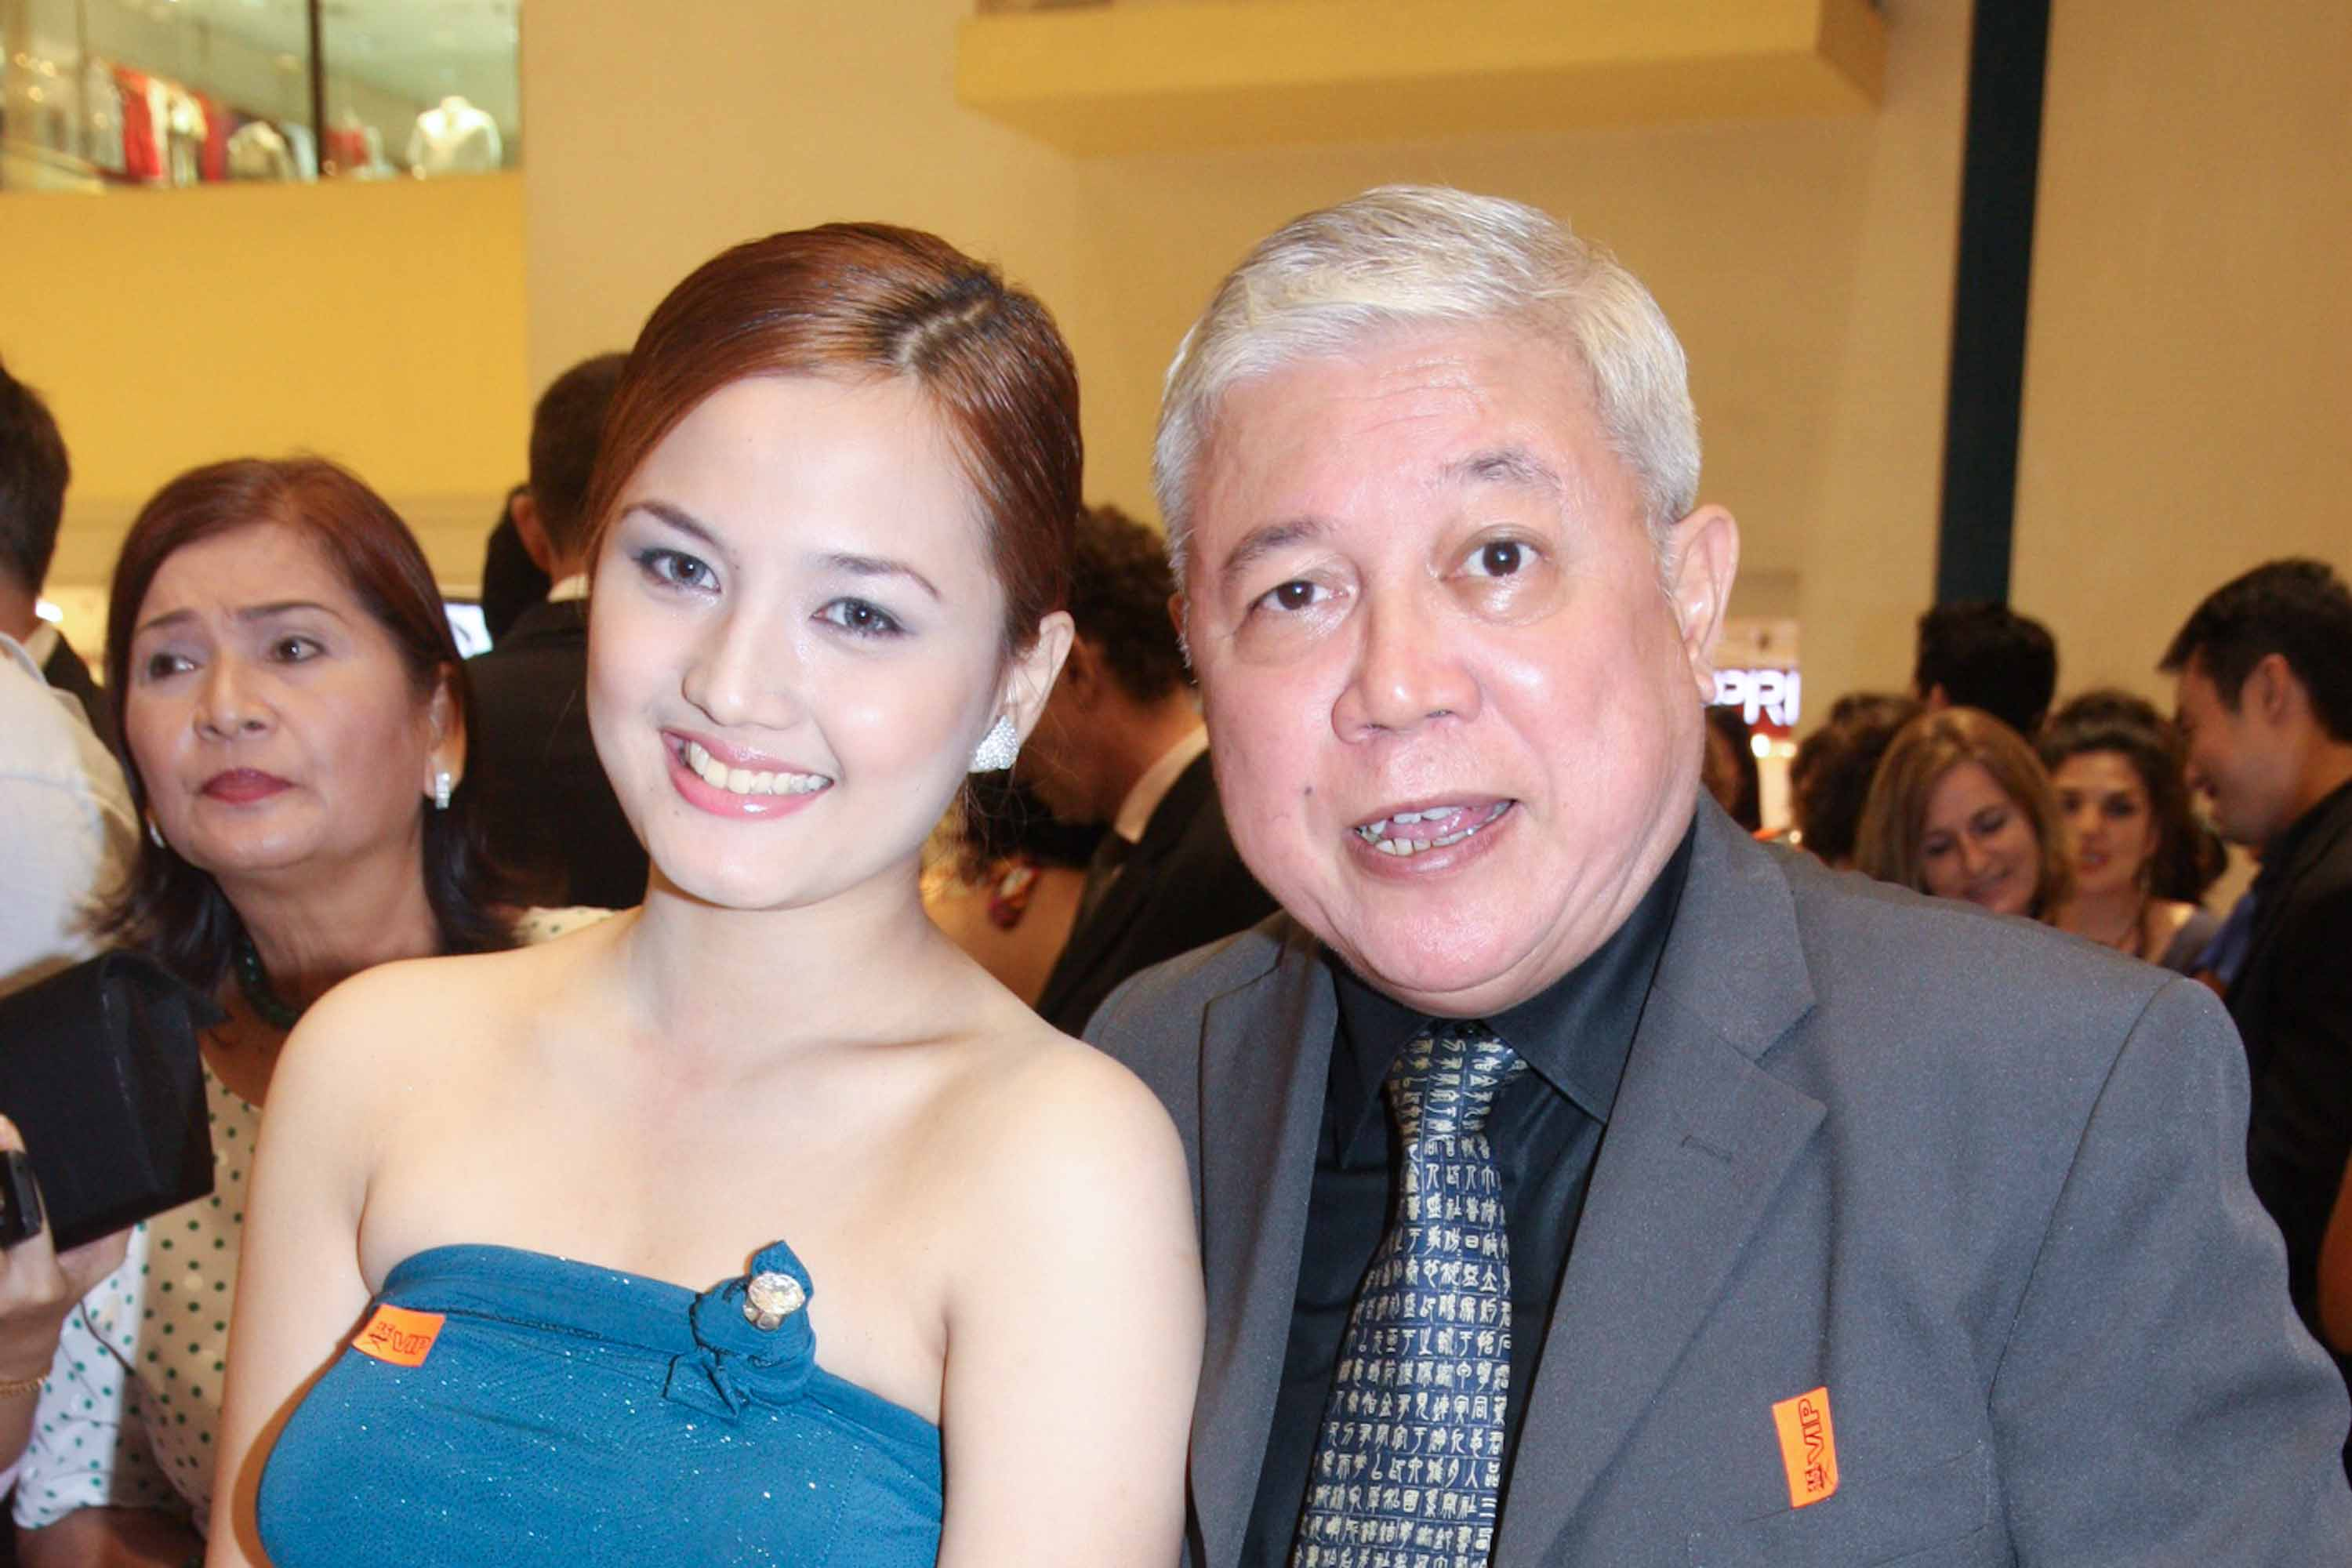 my deniece cornejo pic text and photos by jude bautista